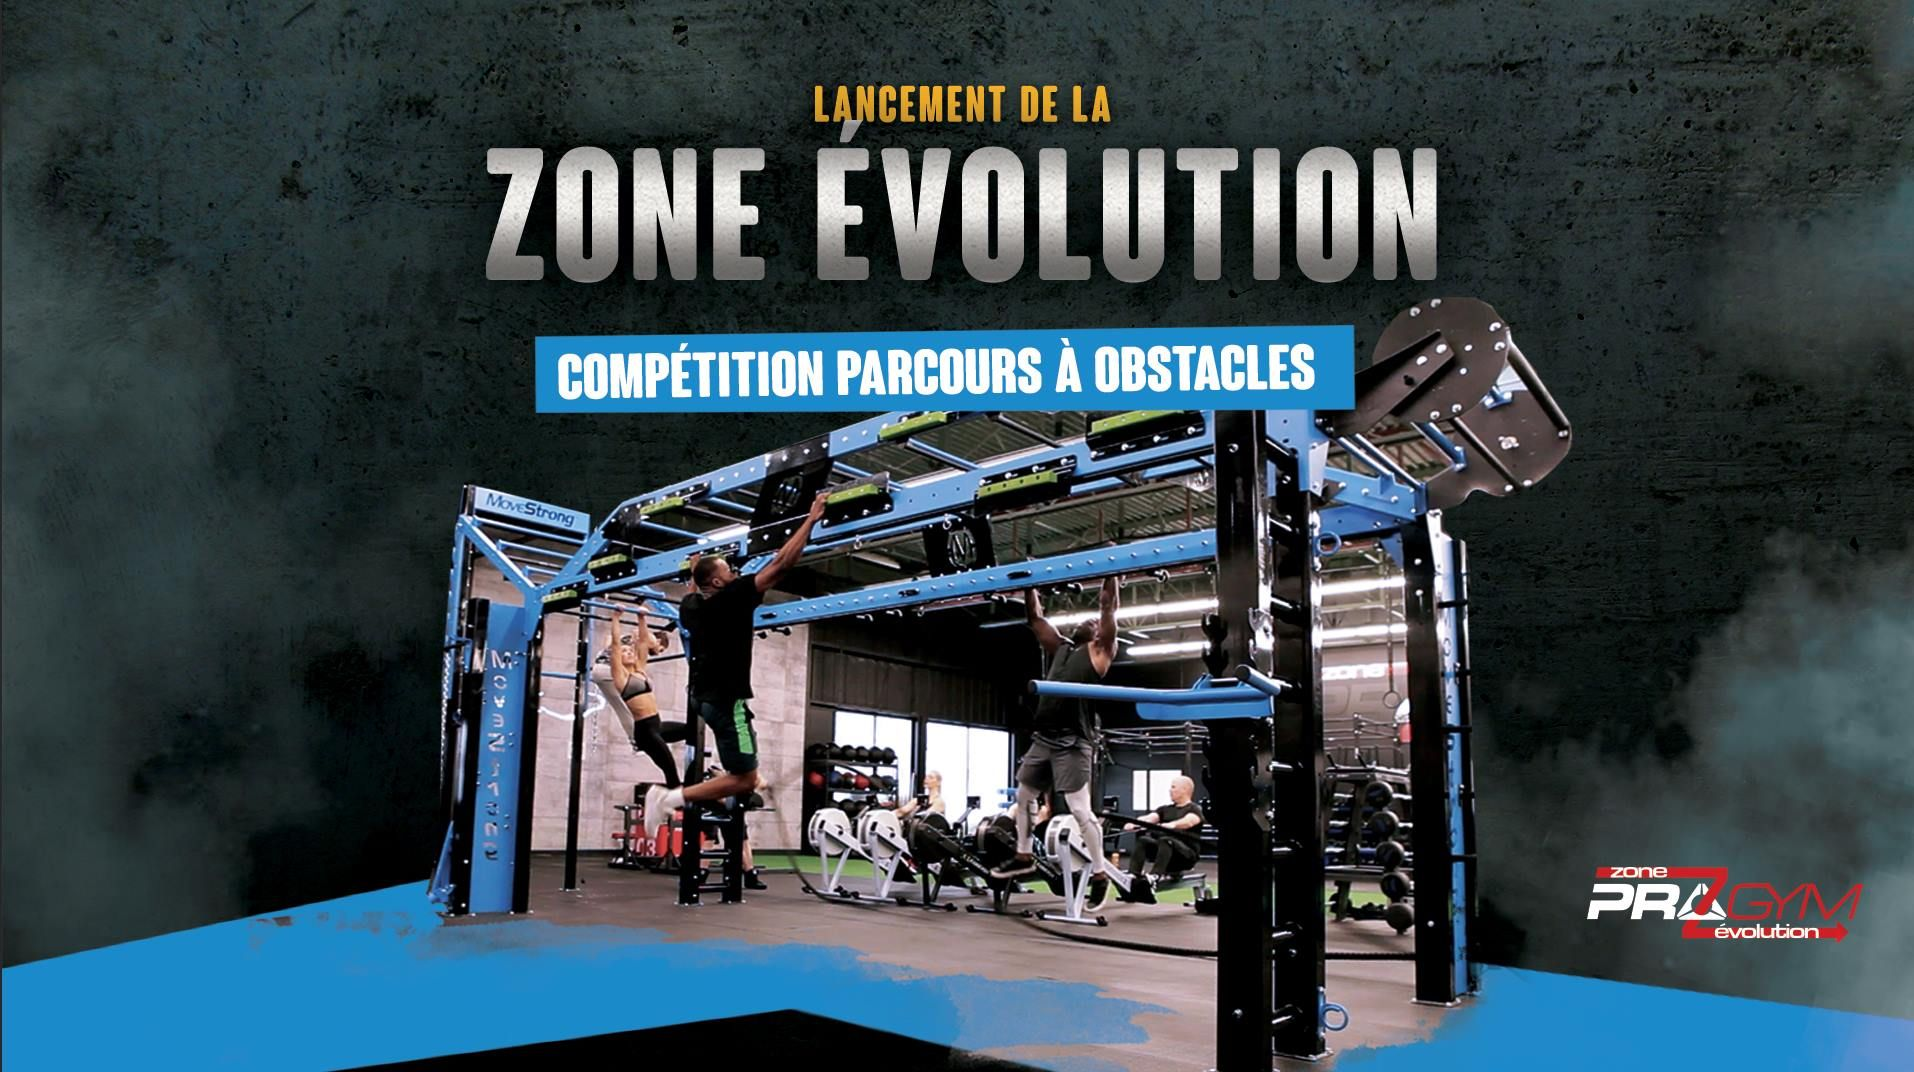 Ninja warrior obstacle course fitness challenge at pro gym montreal